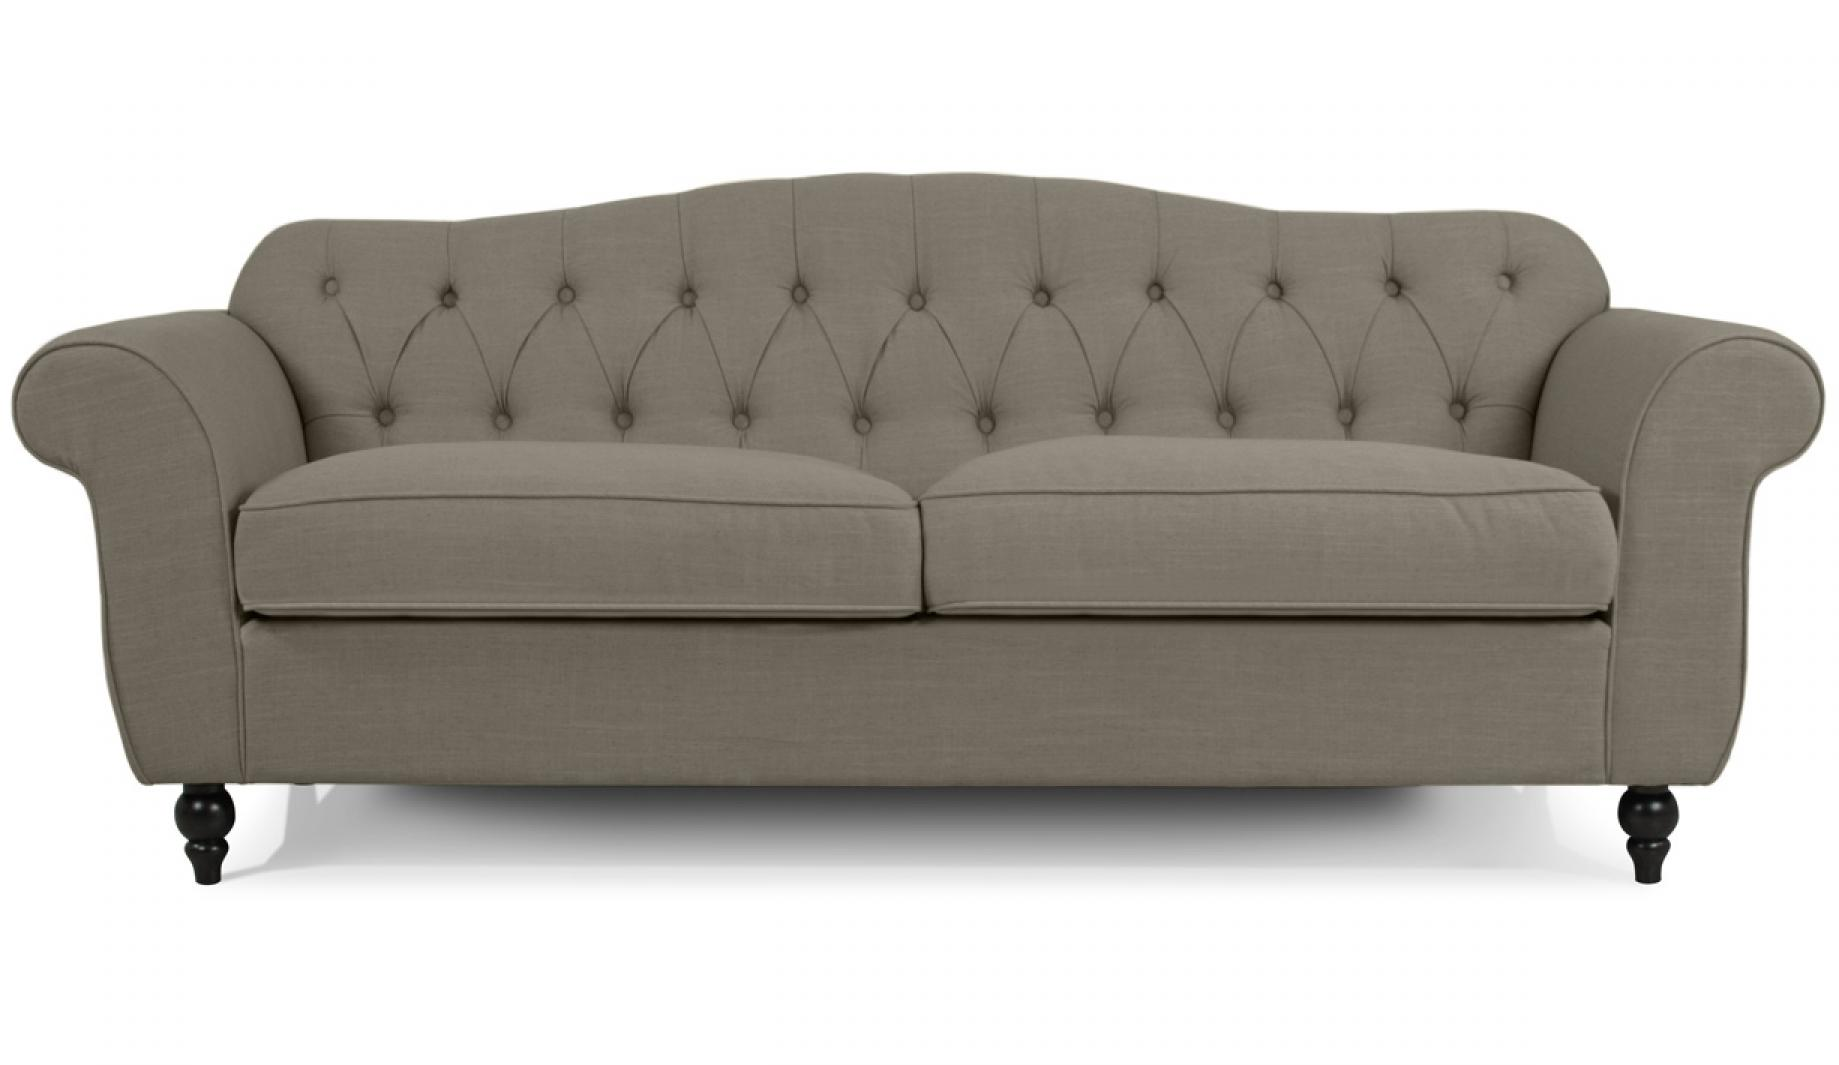 Photos canap chesterfield tissu - Canape chesterfield tissu gris ...